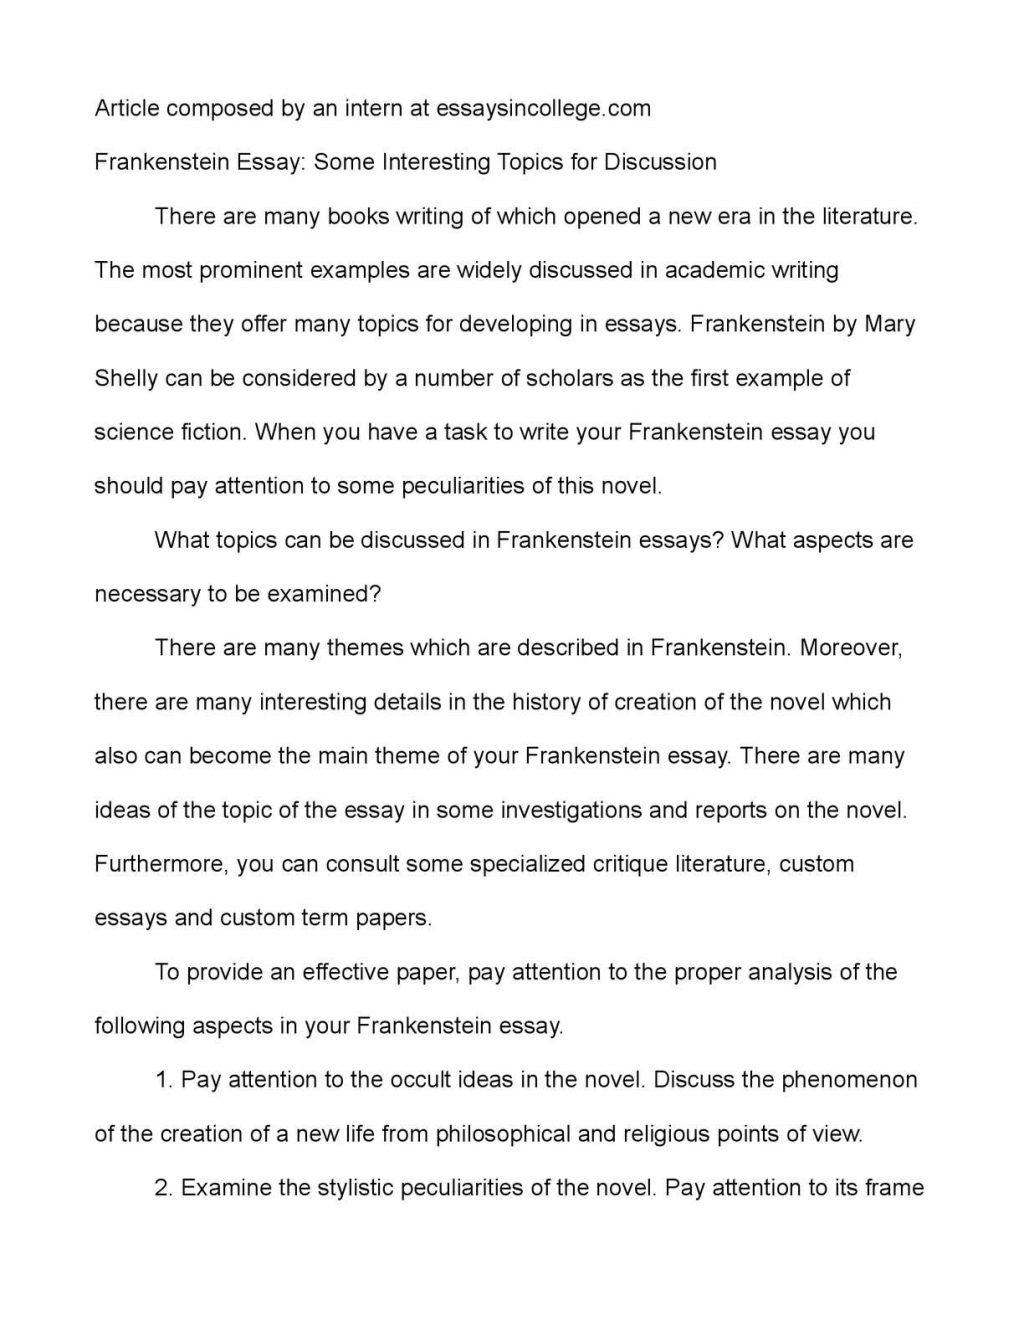 013 Why Should Minimum Wageed Essay Collection Of Solutions Fabulous Template Writing Definitiony Examples Valid Xat Sample Unusual Wage Be Raised We Raise Not Increase Full